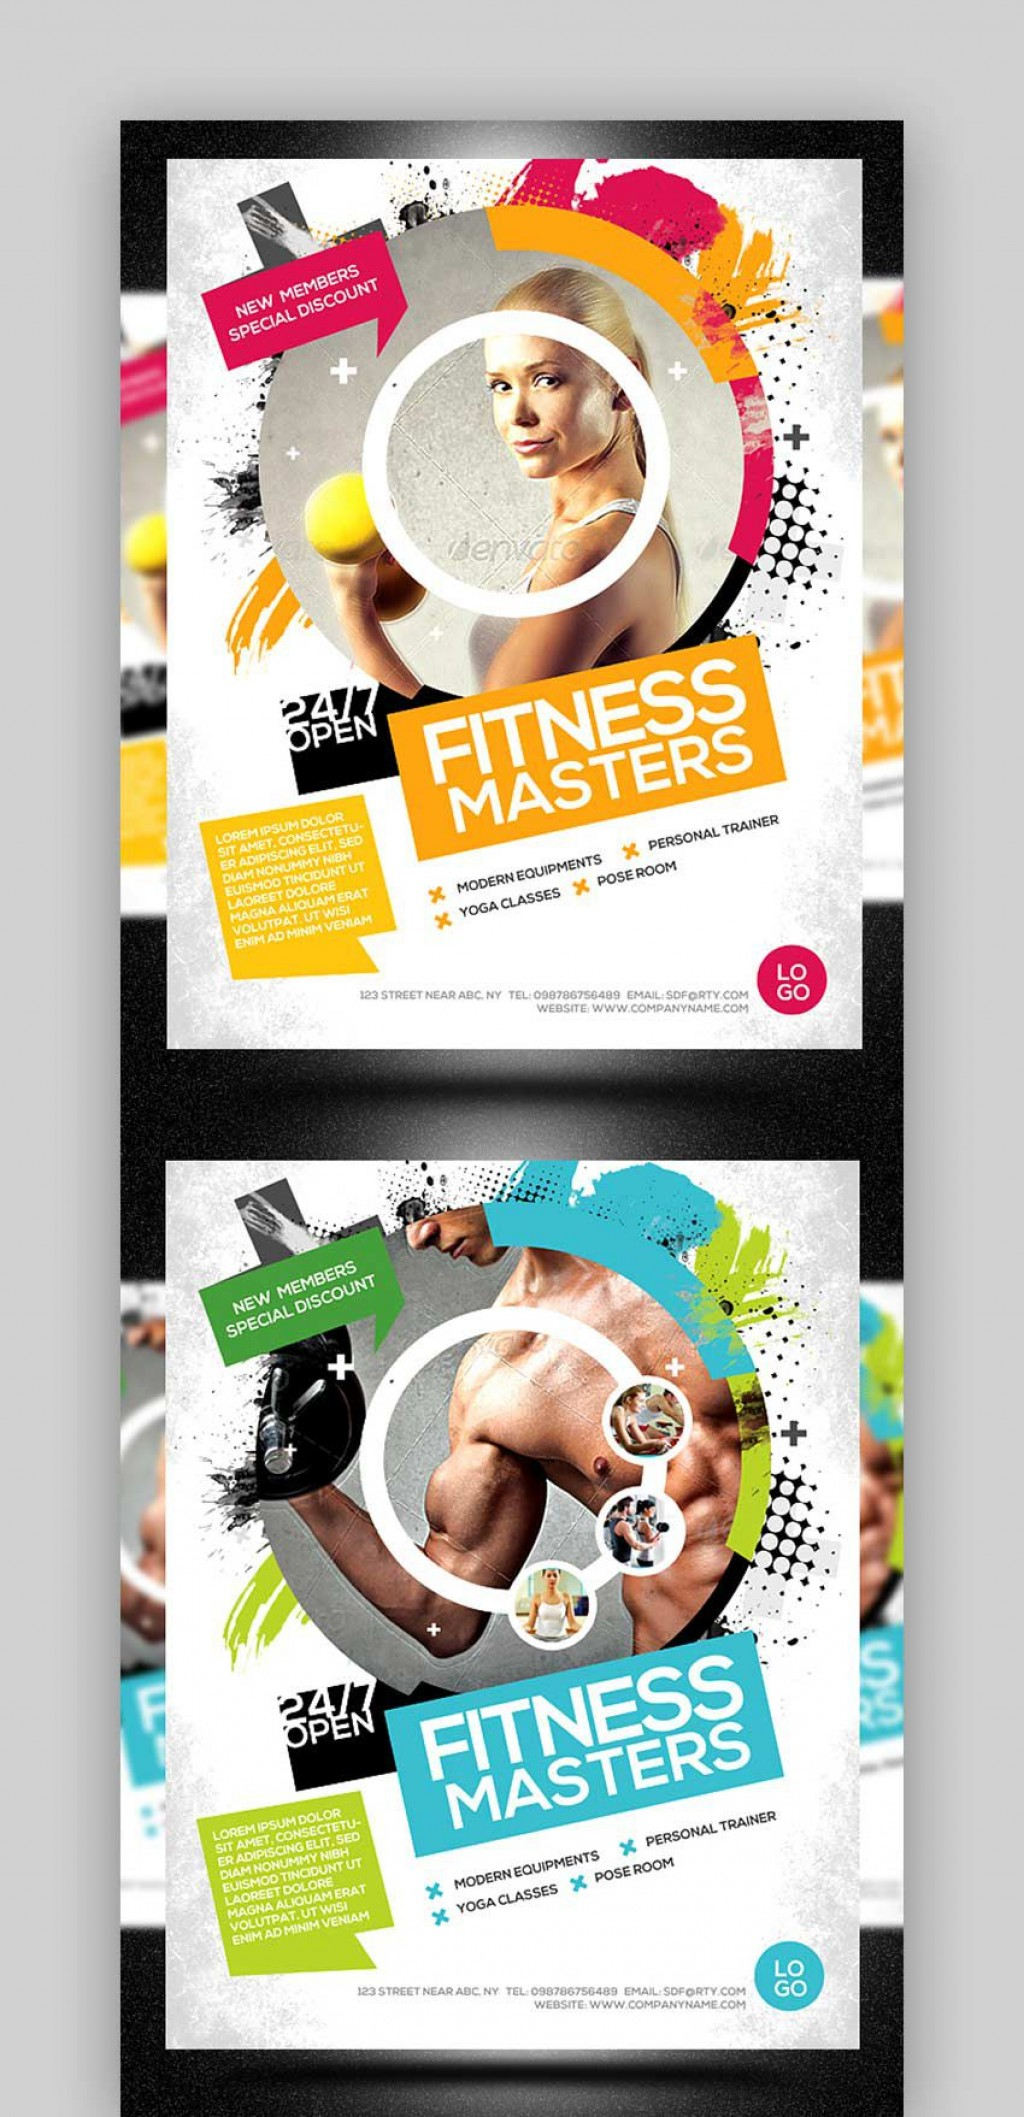 004 Stunning Adobe Photoshop Psd Poster Template Free Download High Resolution Large